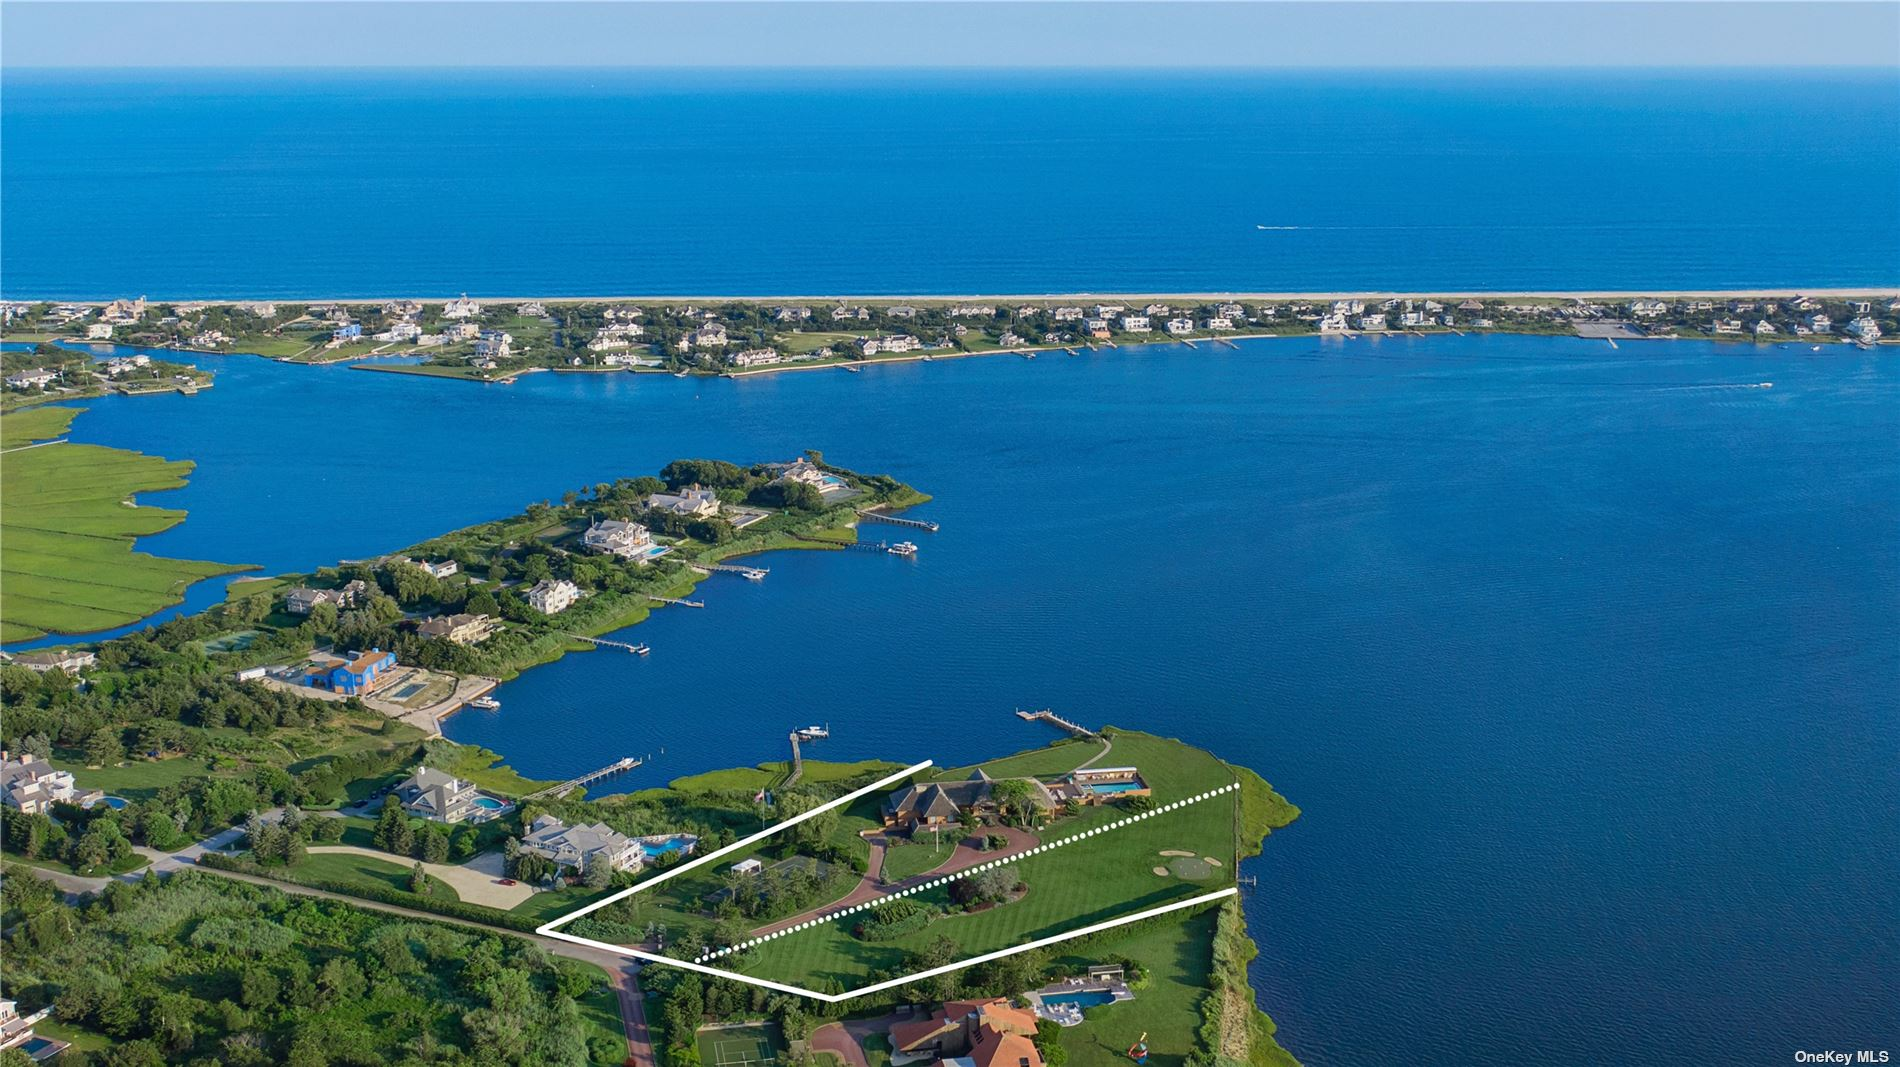 An Impressive And Premier Waterfront Estate Designed By Renowned Architect, Norman Jaffe, In Quogue On The Desirable Quantuck Bay. This Two-Lot Estate Spanning Over 5 Acres and 700 +/- Feet Of Bulkheading Includes Two Docks, Southwest Views From Bay To Ocean, And The Most Spectacular Sunsets, Is Not To Be Missed. With 7,850 +/- sqft., Over 8,000 sqft. Of Outdoor Decking, A 20 x 50 Ft Pool, Spa & Sundeck, Tennis Court, Professional Putting Green, 100 Ft Stationary Pier With 30 Ft Floating Dock, There Is No Need To Look Farther East When You Can Own Your Own Hamptons Waterfront Haven Right In Quogue!